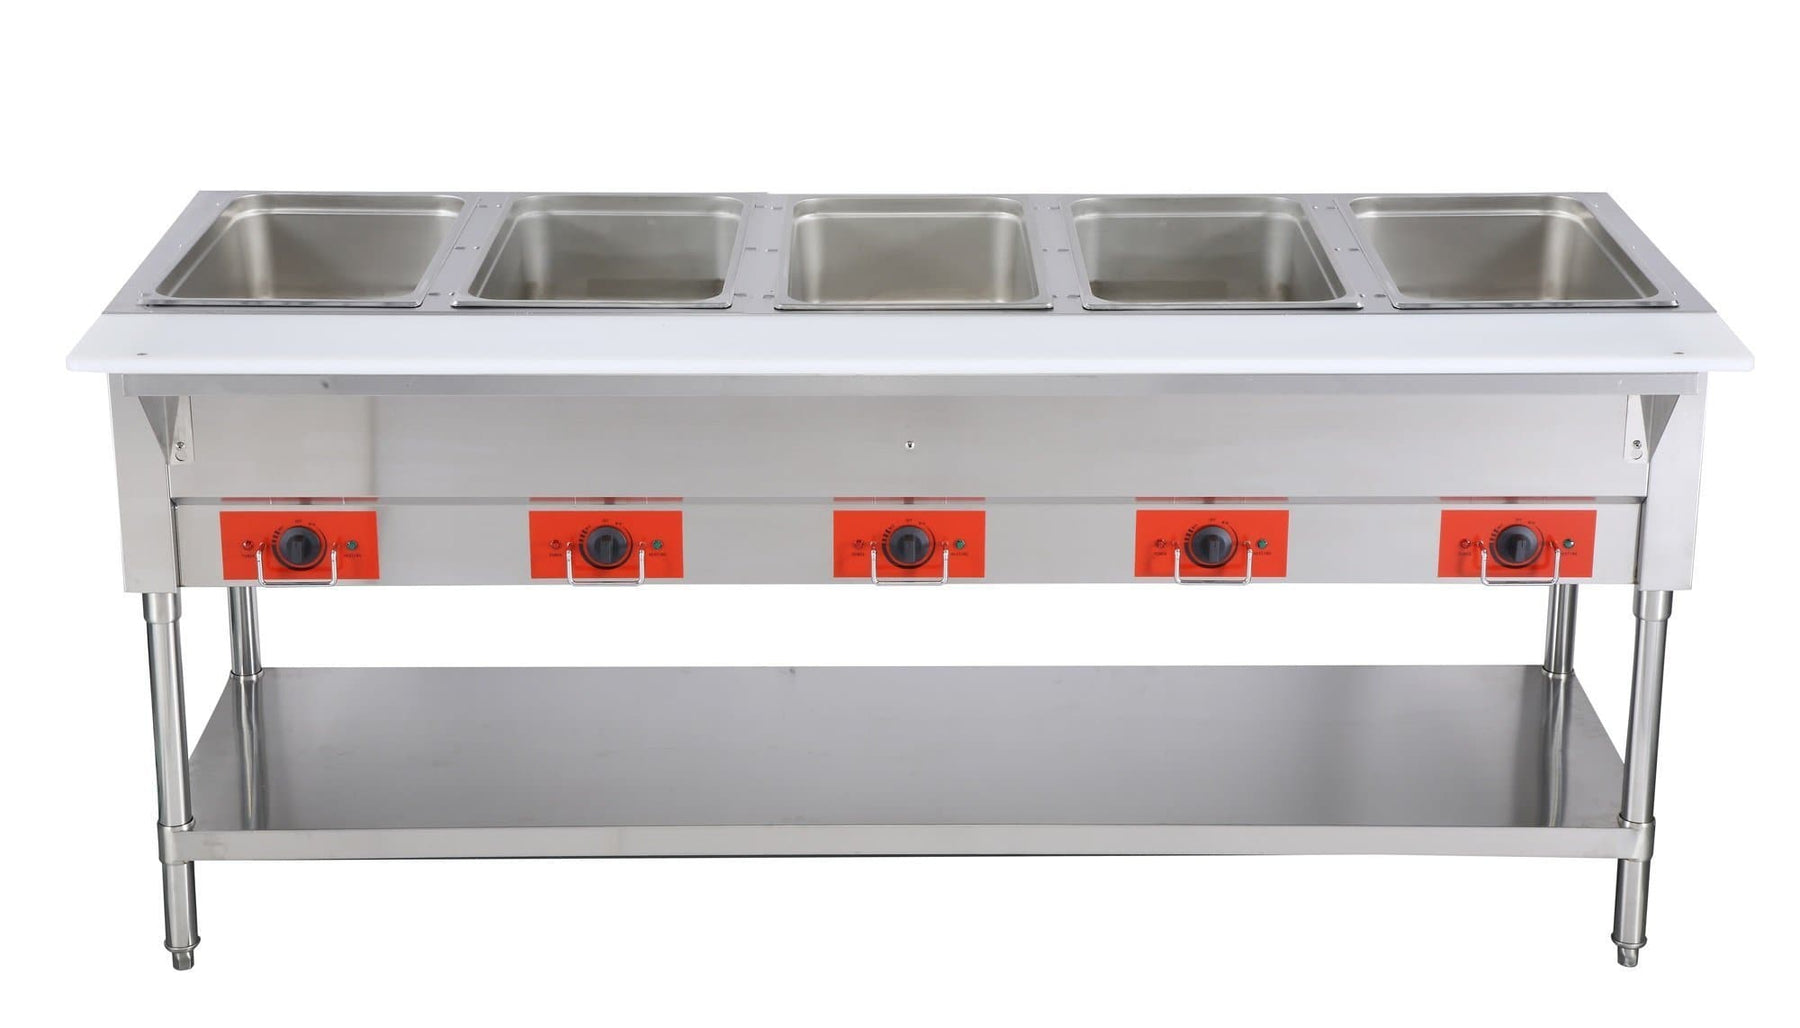 Omega FZ-06E Electric 5 Well Steam Table - 208-240V, NO WATER REQUIRED - Omni Food Equipment